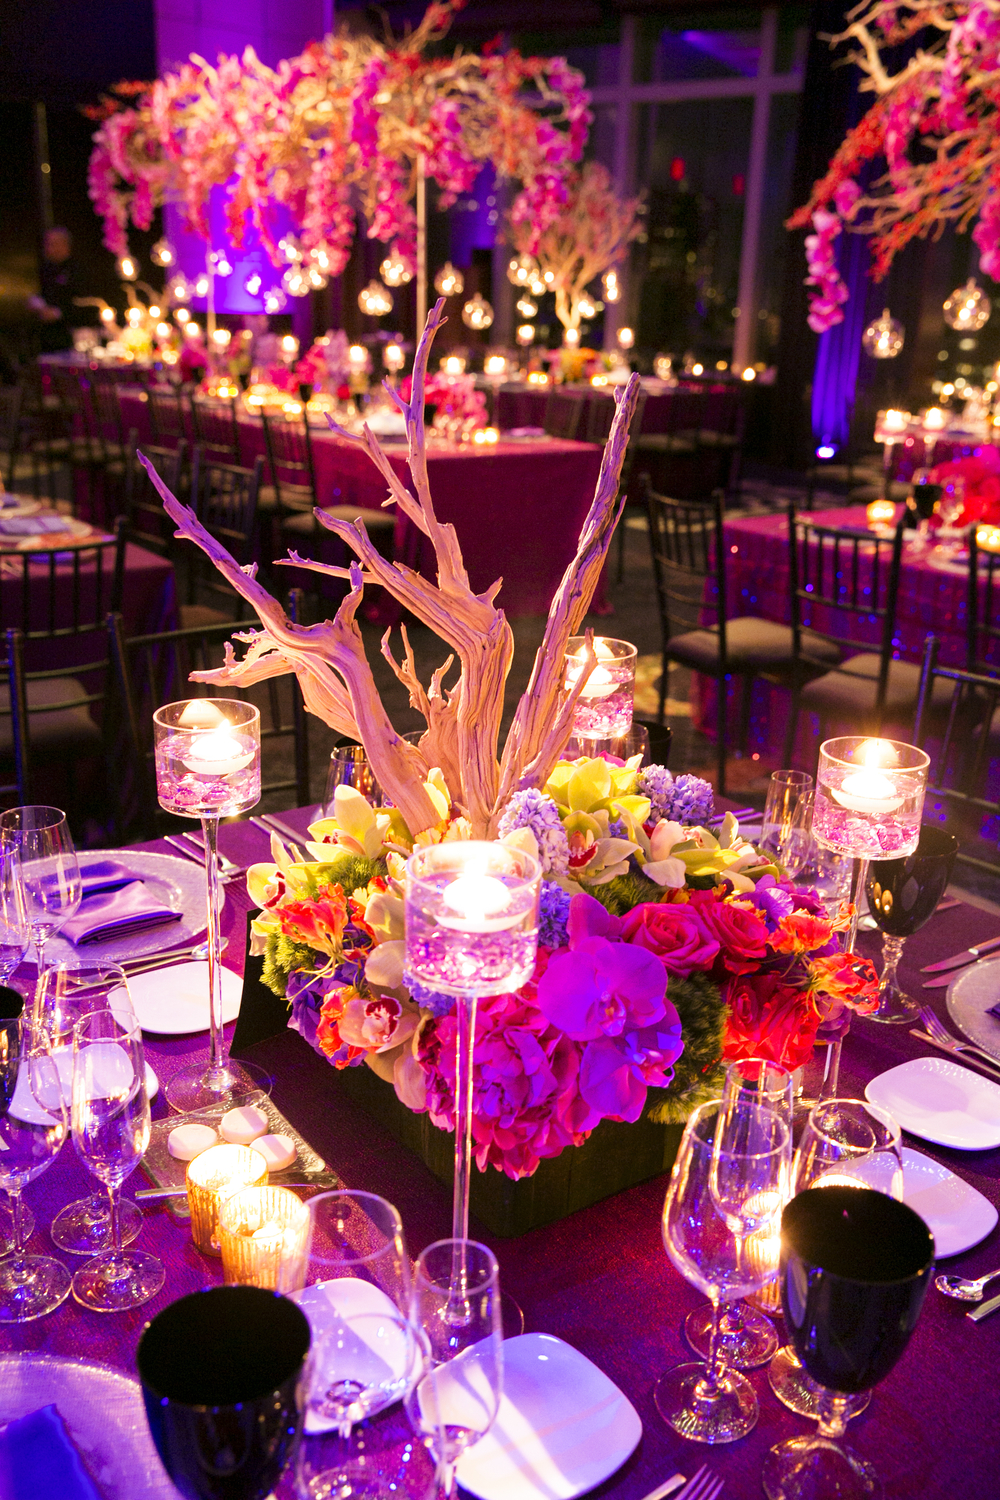 NYC-Wedding-Planner-Andrea-Freeman-Events-Mandarin-Oriental-13.jpg